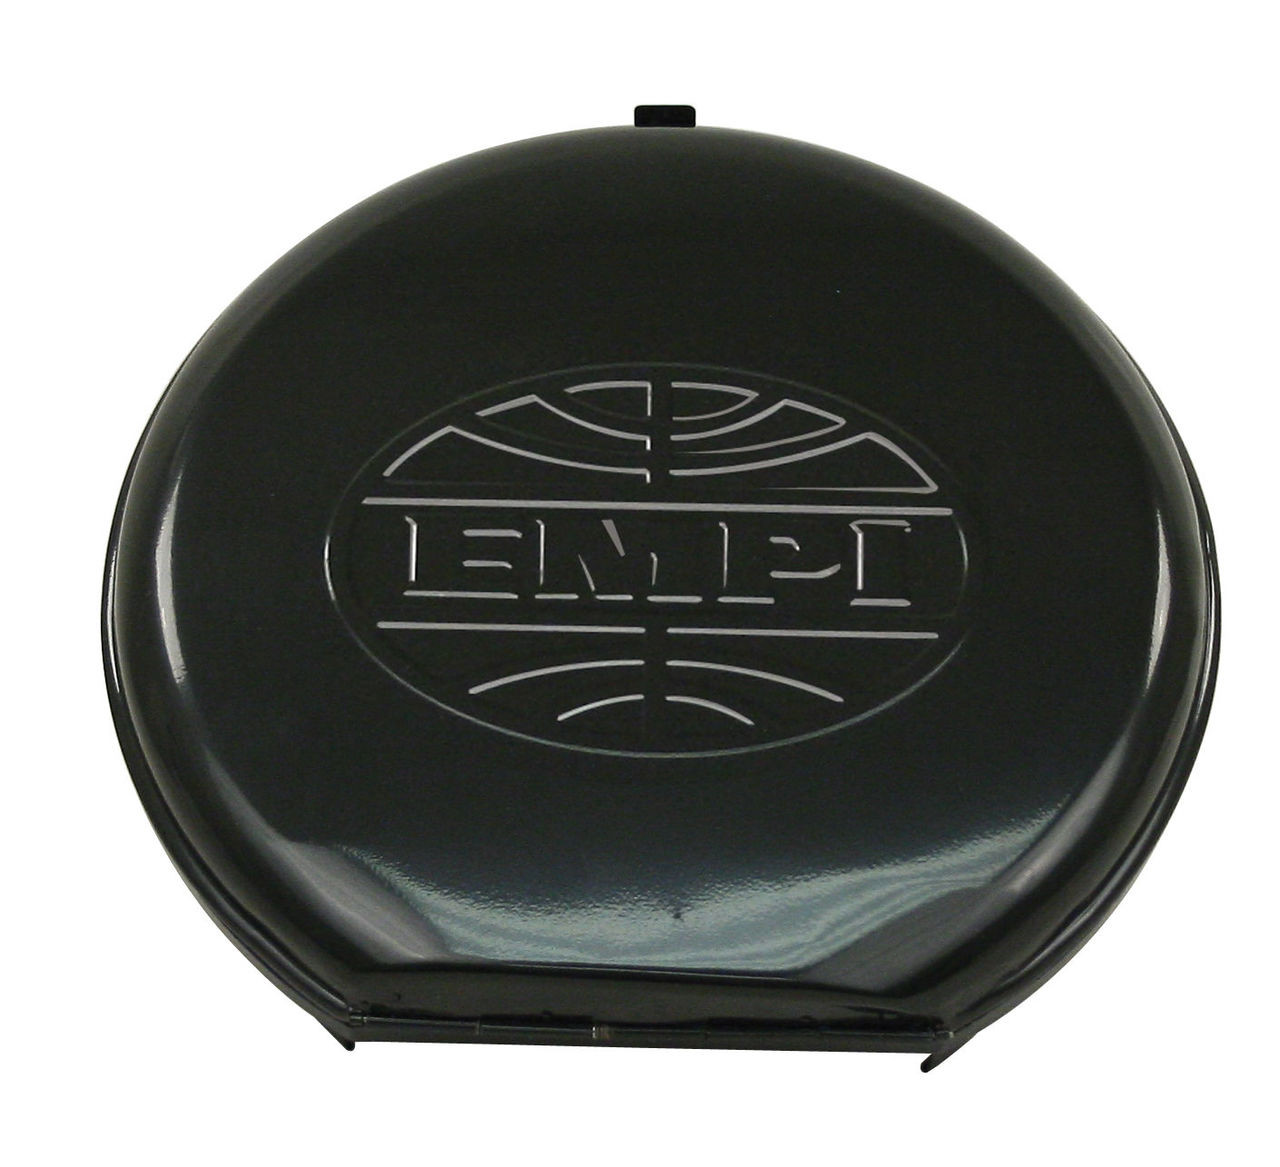 Accessory Hazet Vintage Style Spare Tire Mount Round Tool Box, Fits VW Bug Ghia, Empi